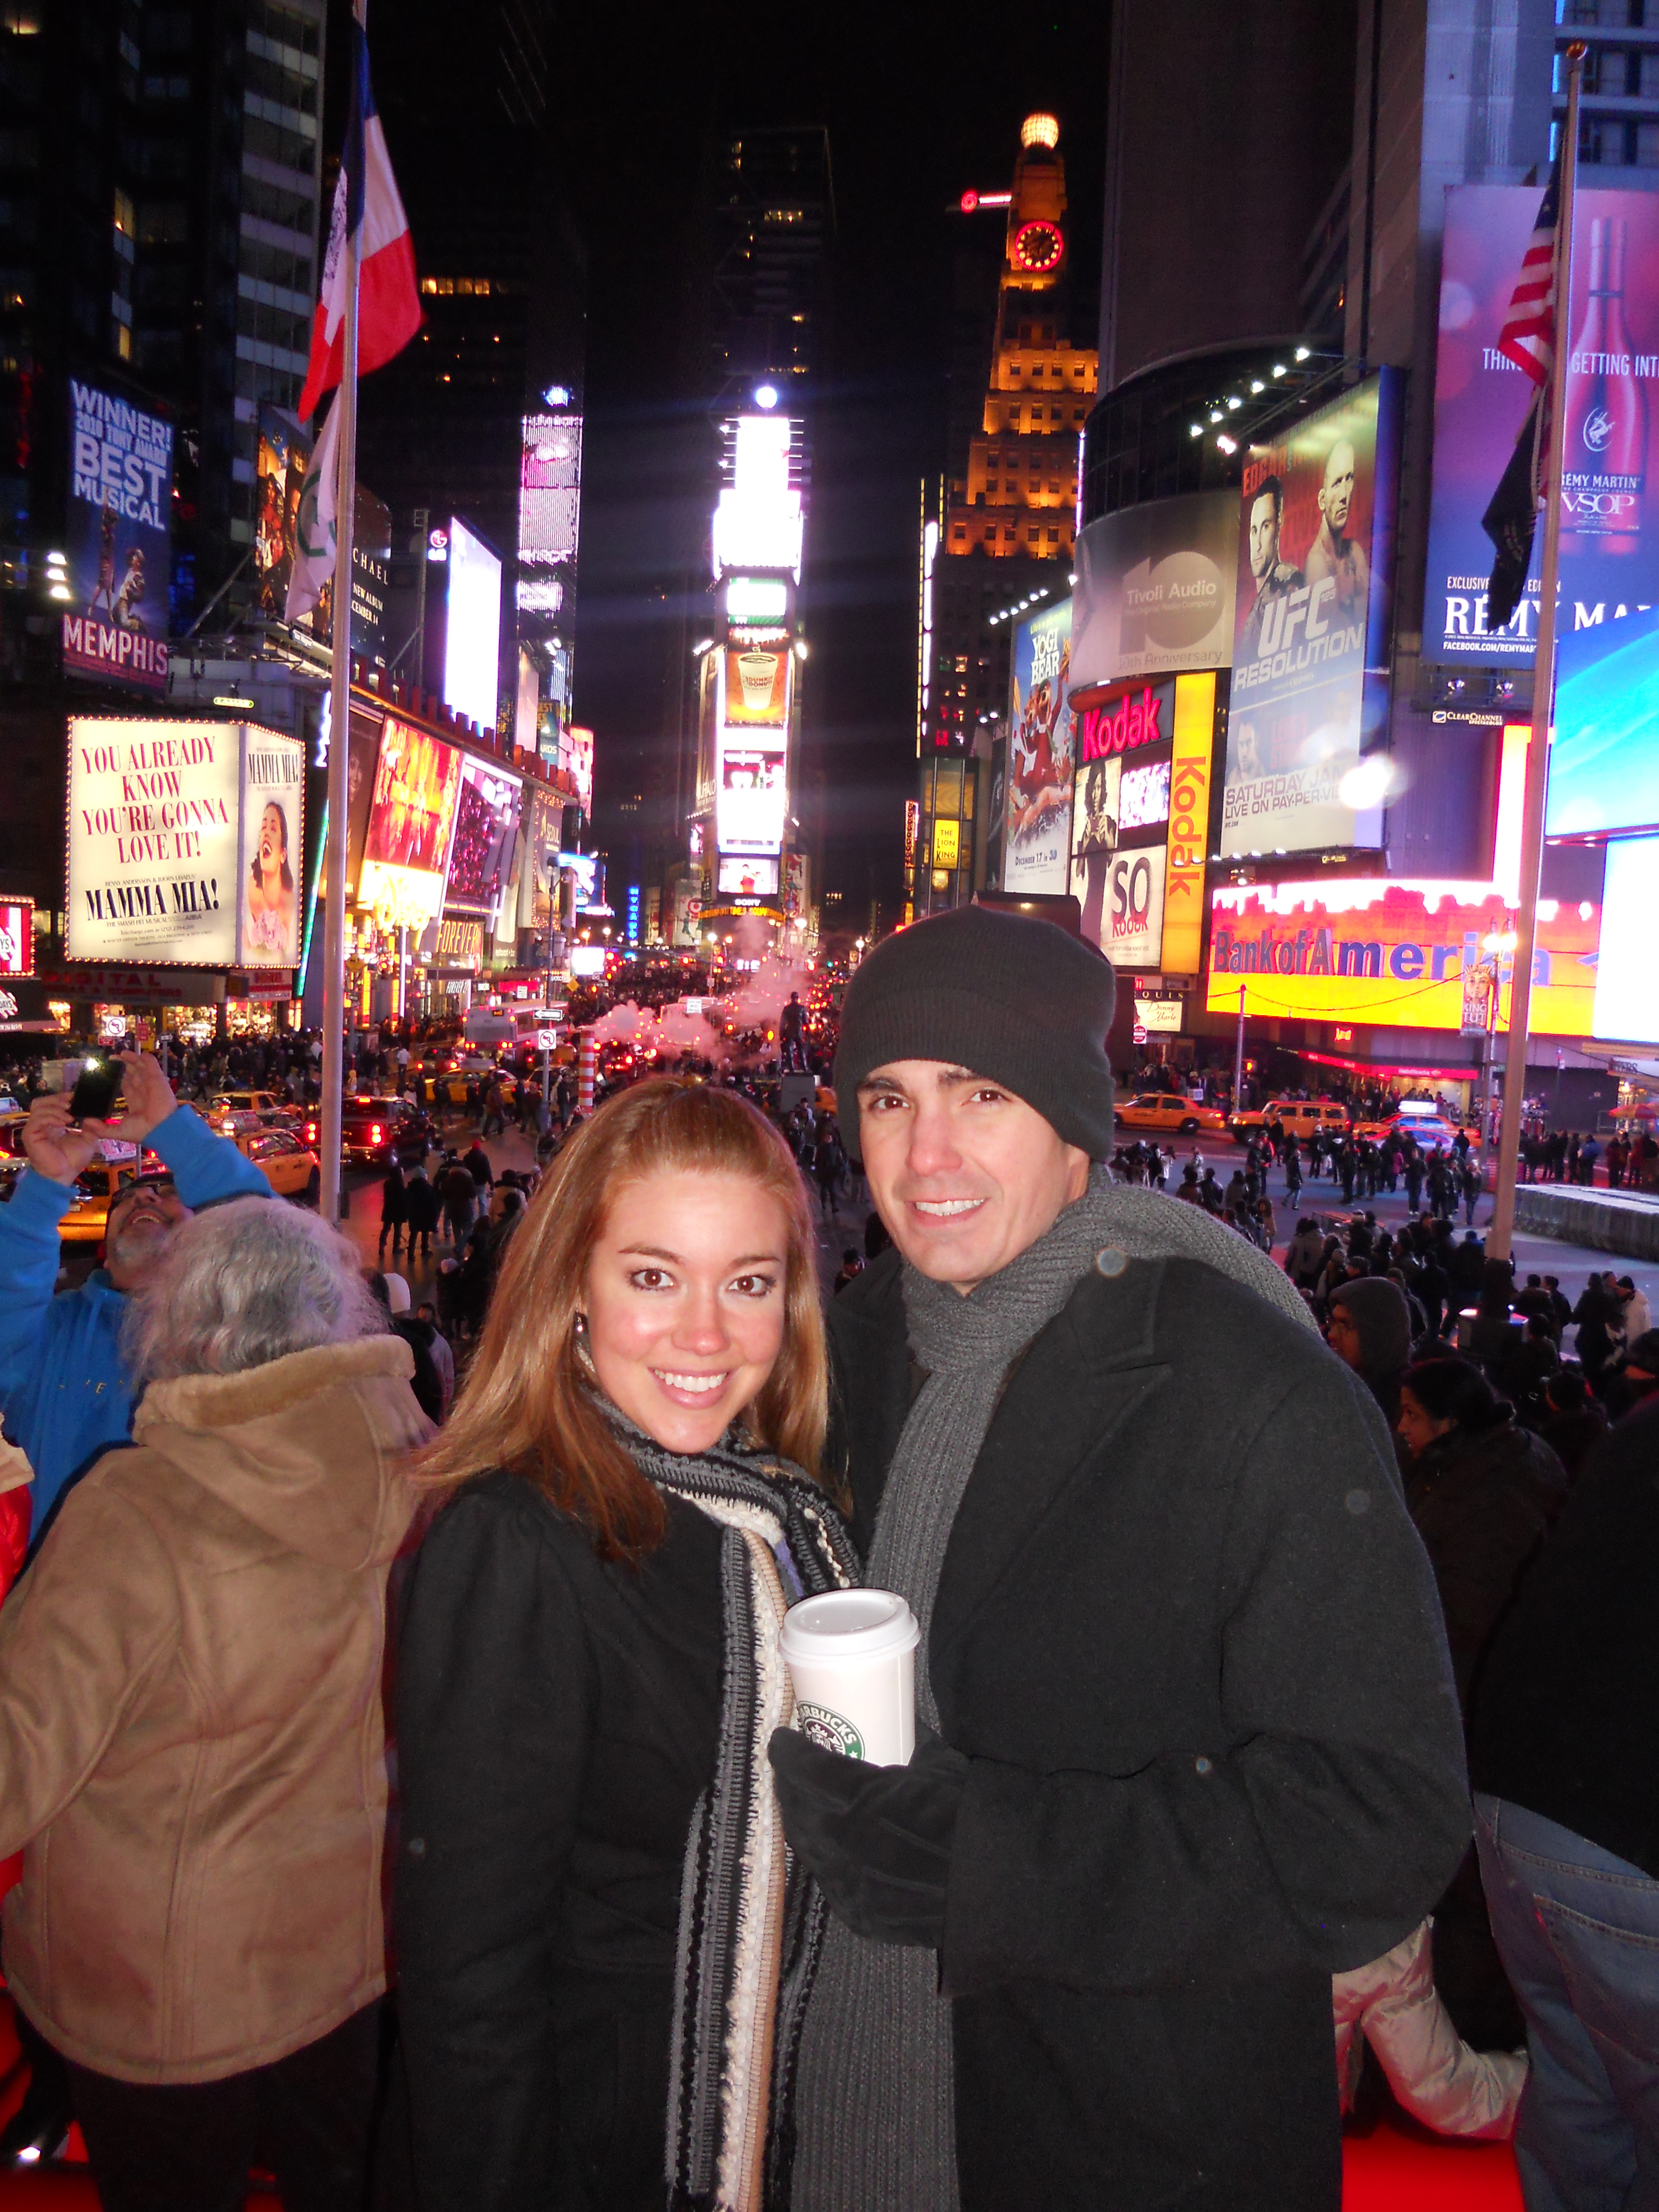 Stranded In New York City For New Year's Eve